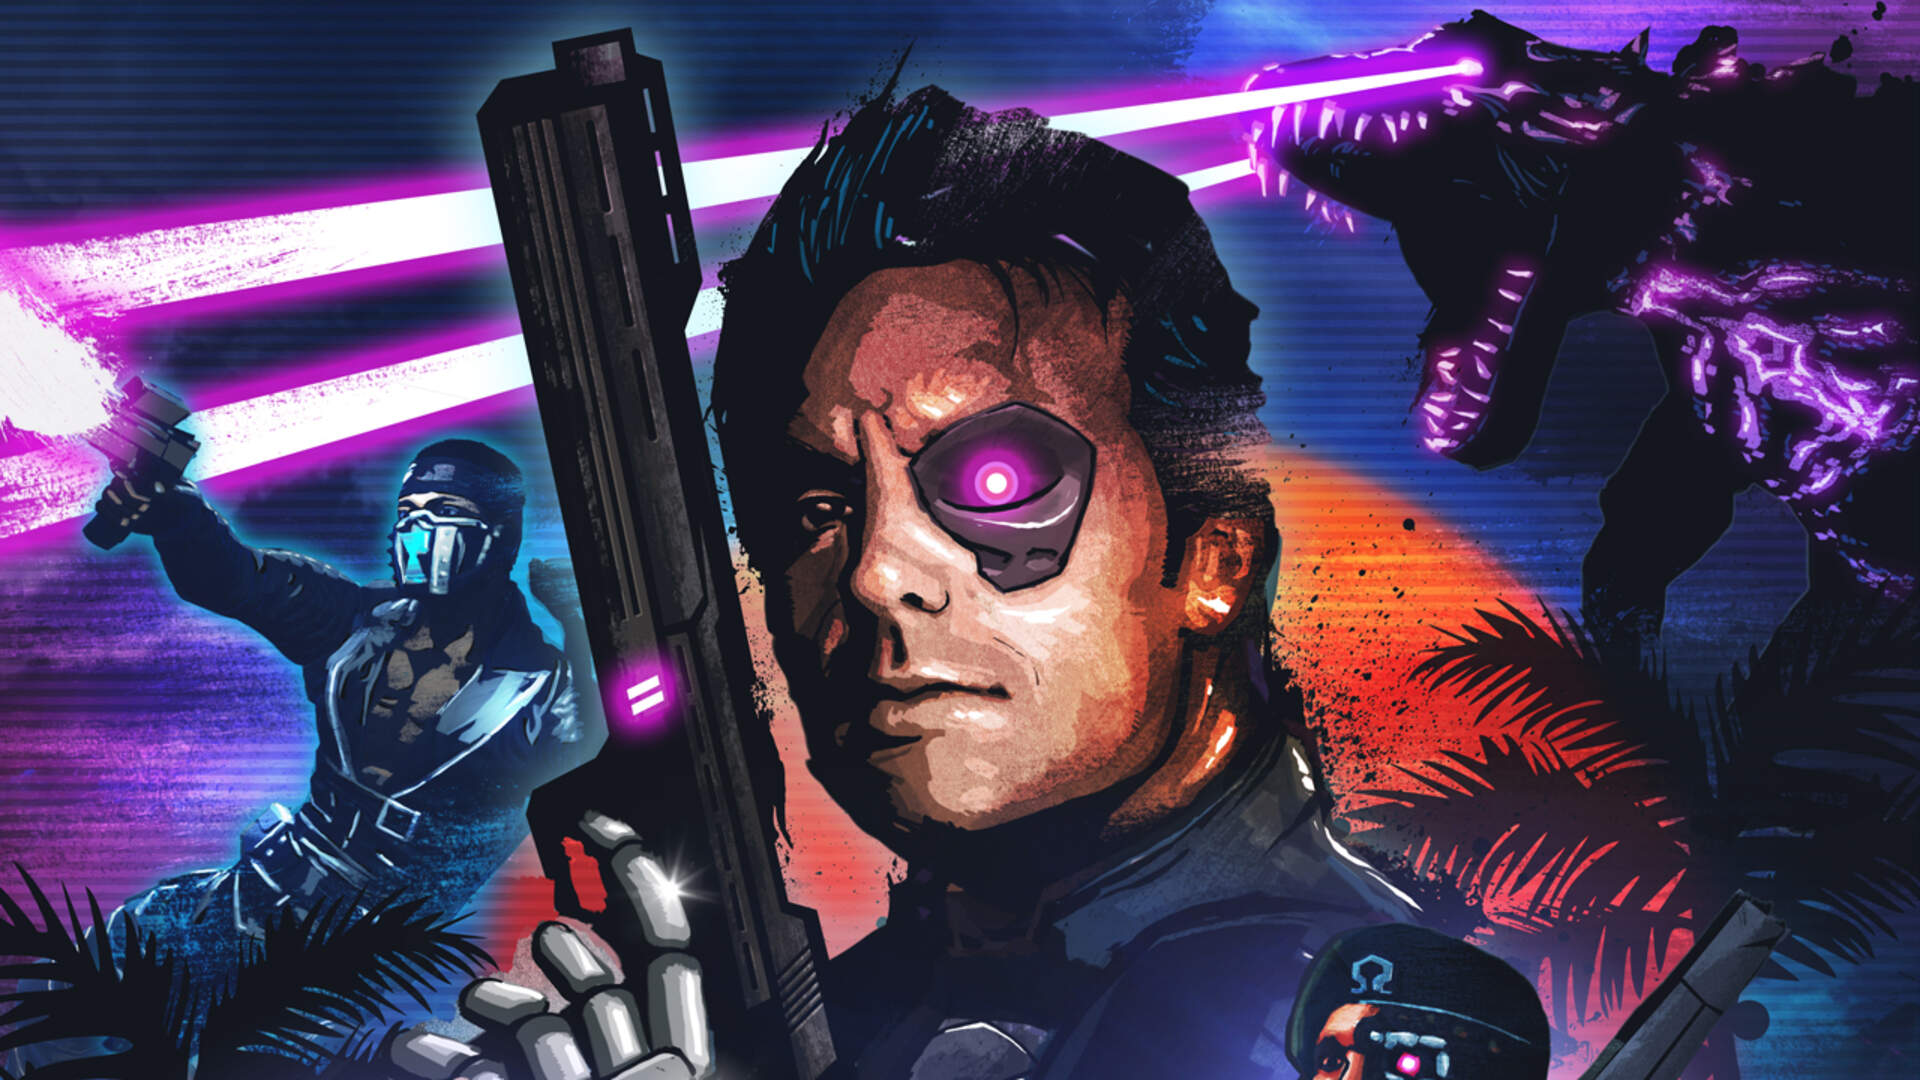 Blood Dragon Creator Working on New Project